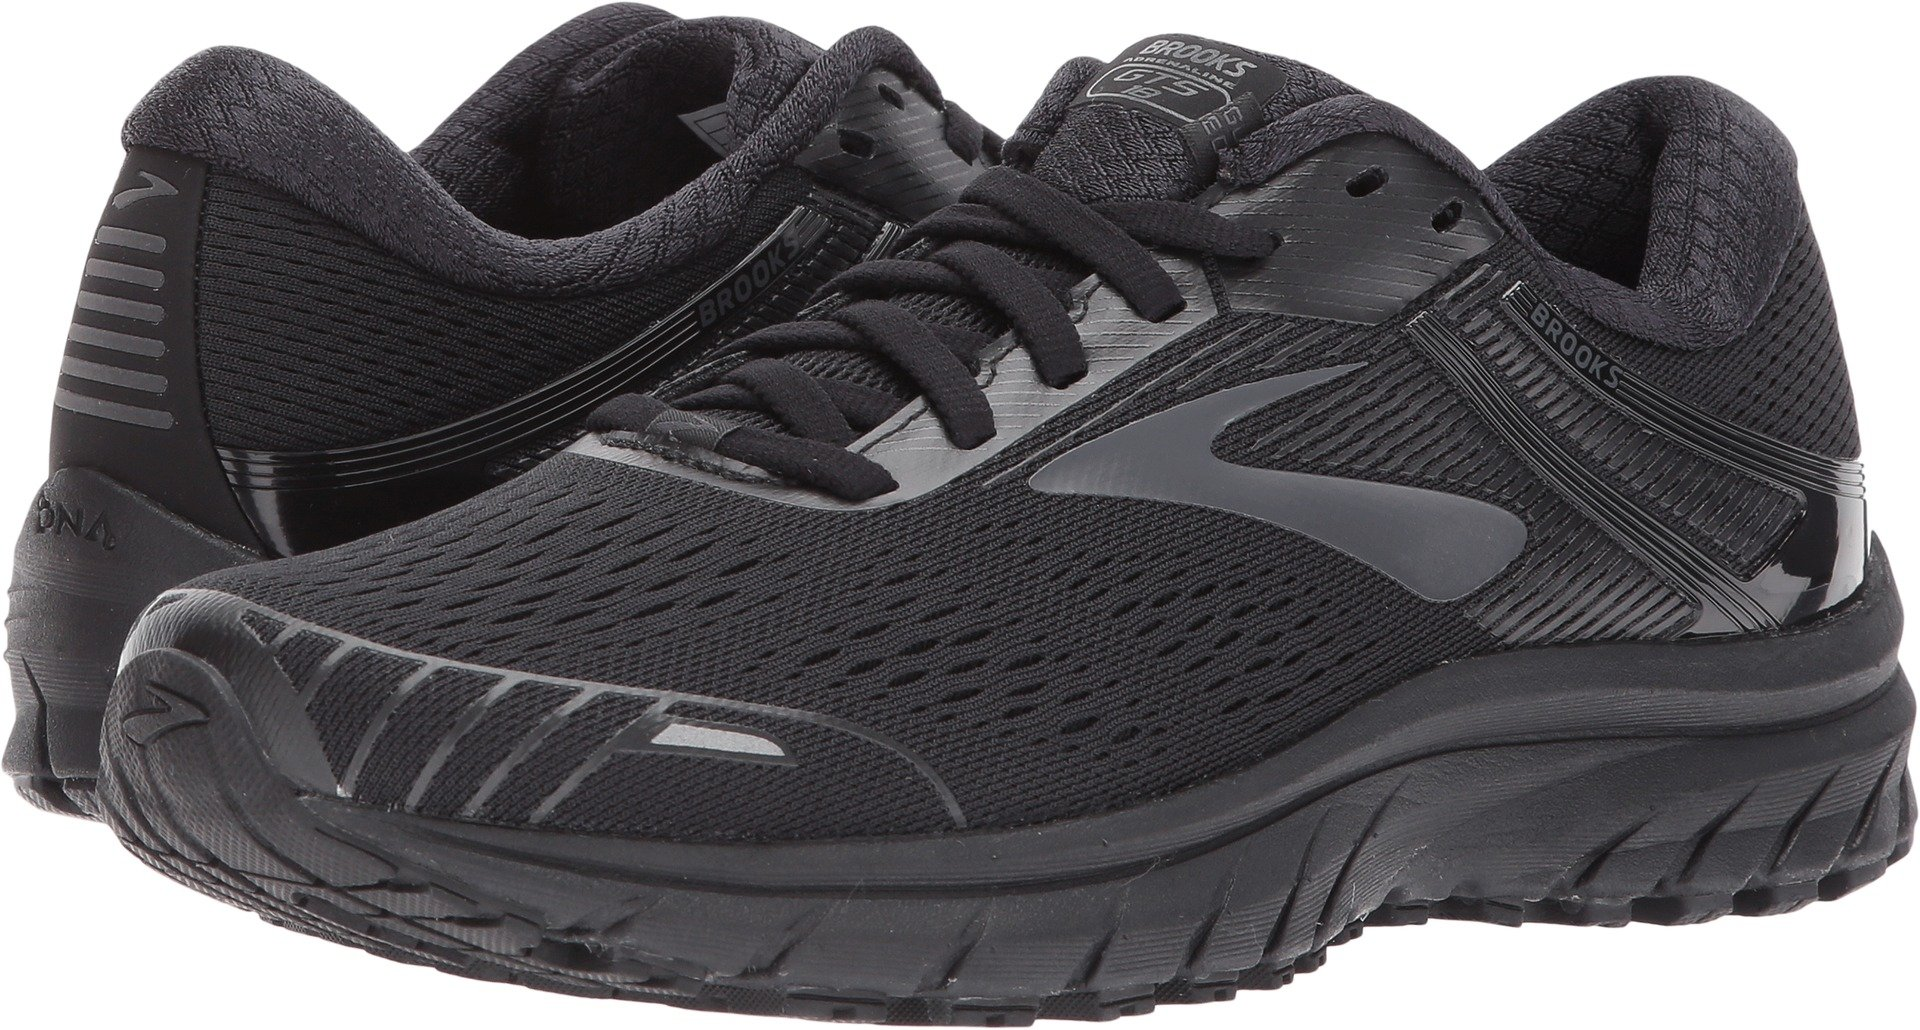 Brooks Women's Adrenaline GTS 18 Black/Black 5.5 D US